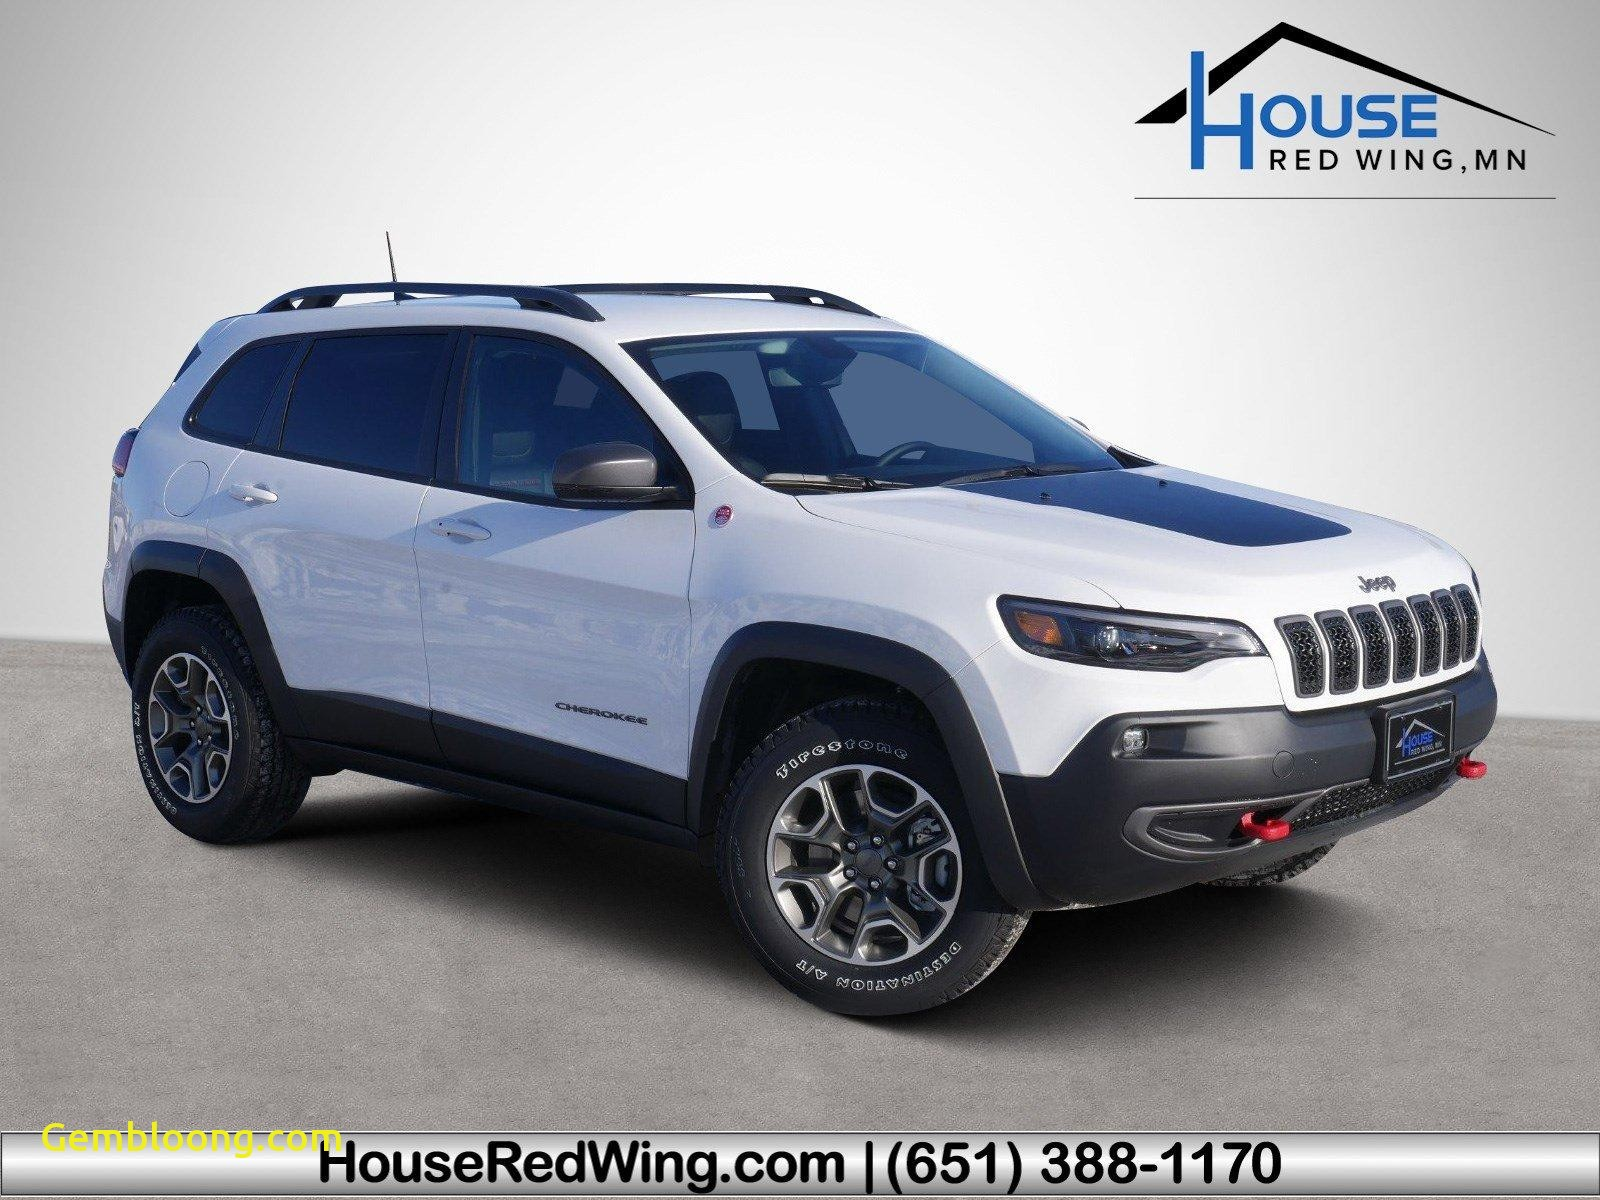 Used Cars for Sale Near Me Jeep Beautiful New & Used Cars for Sale